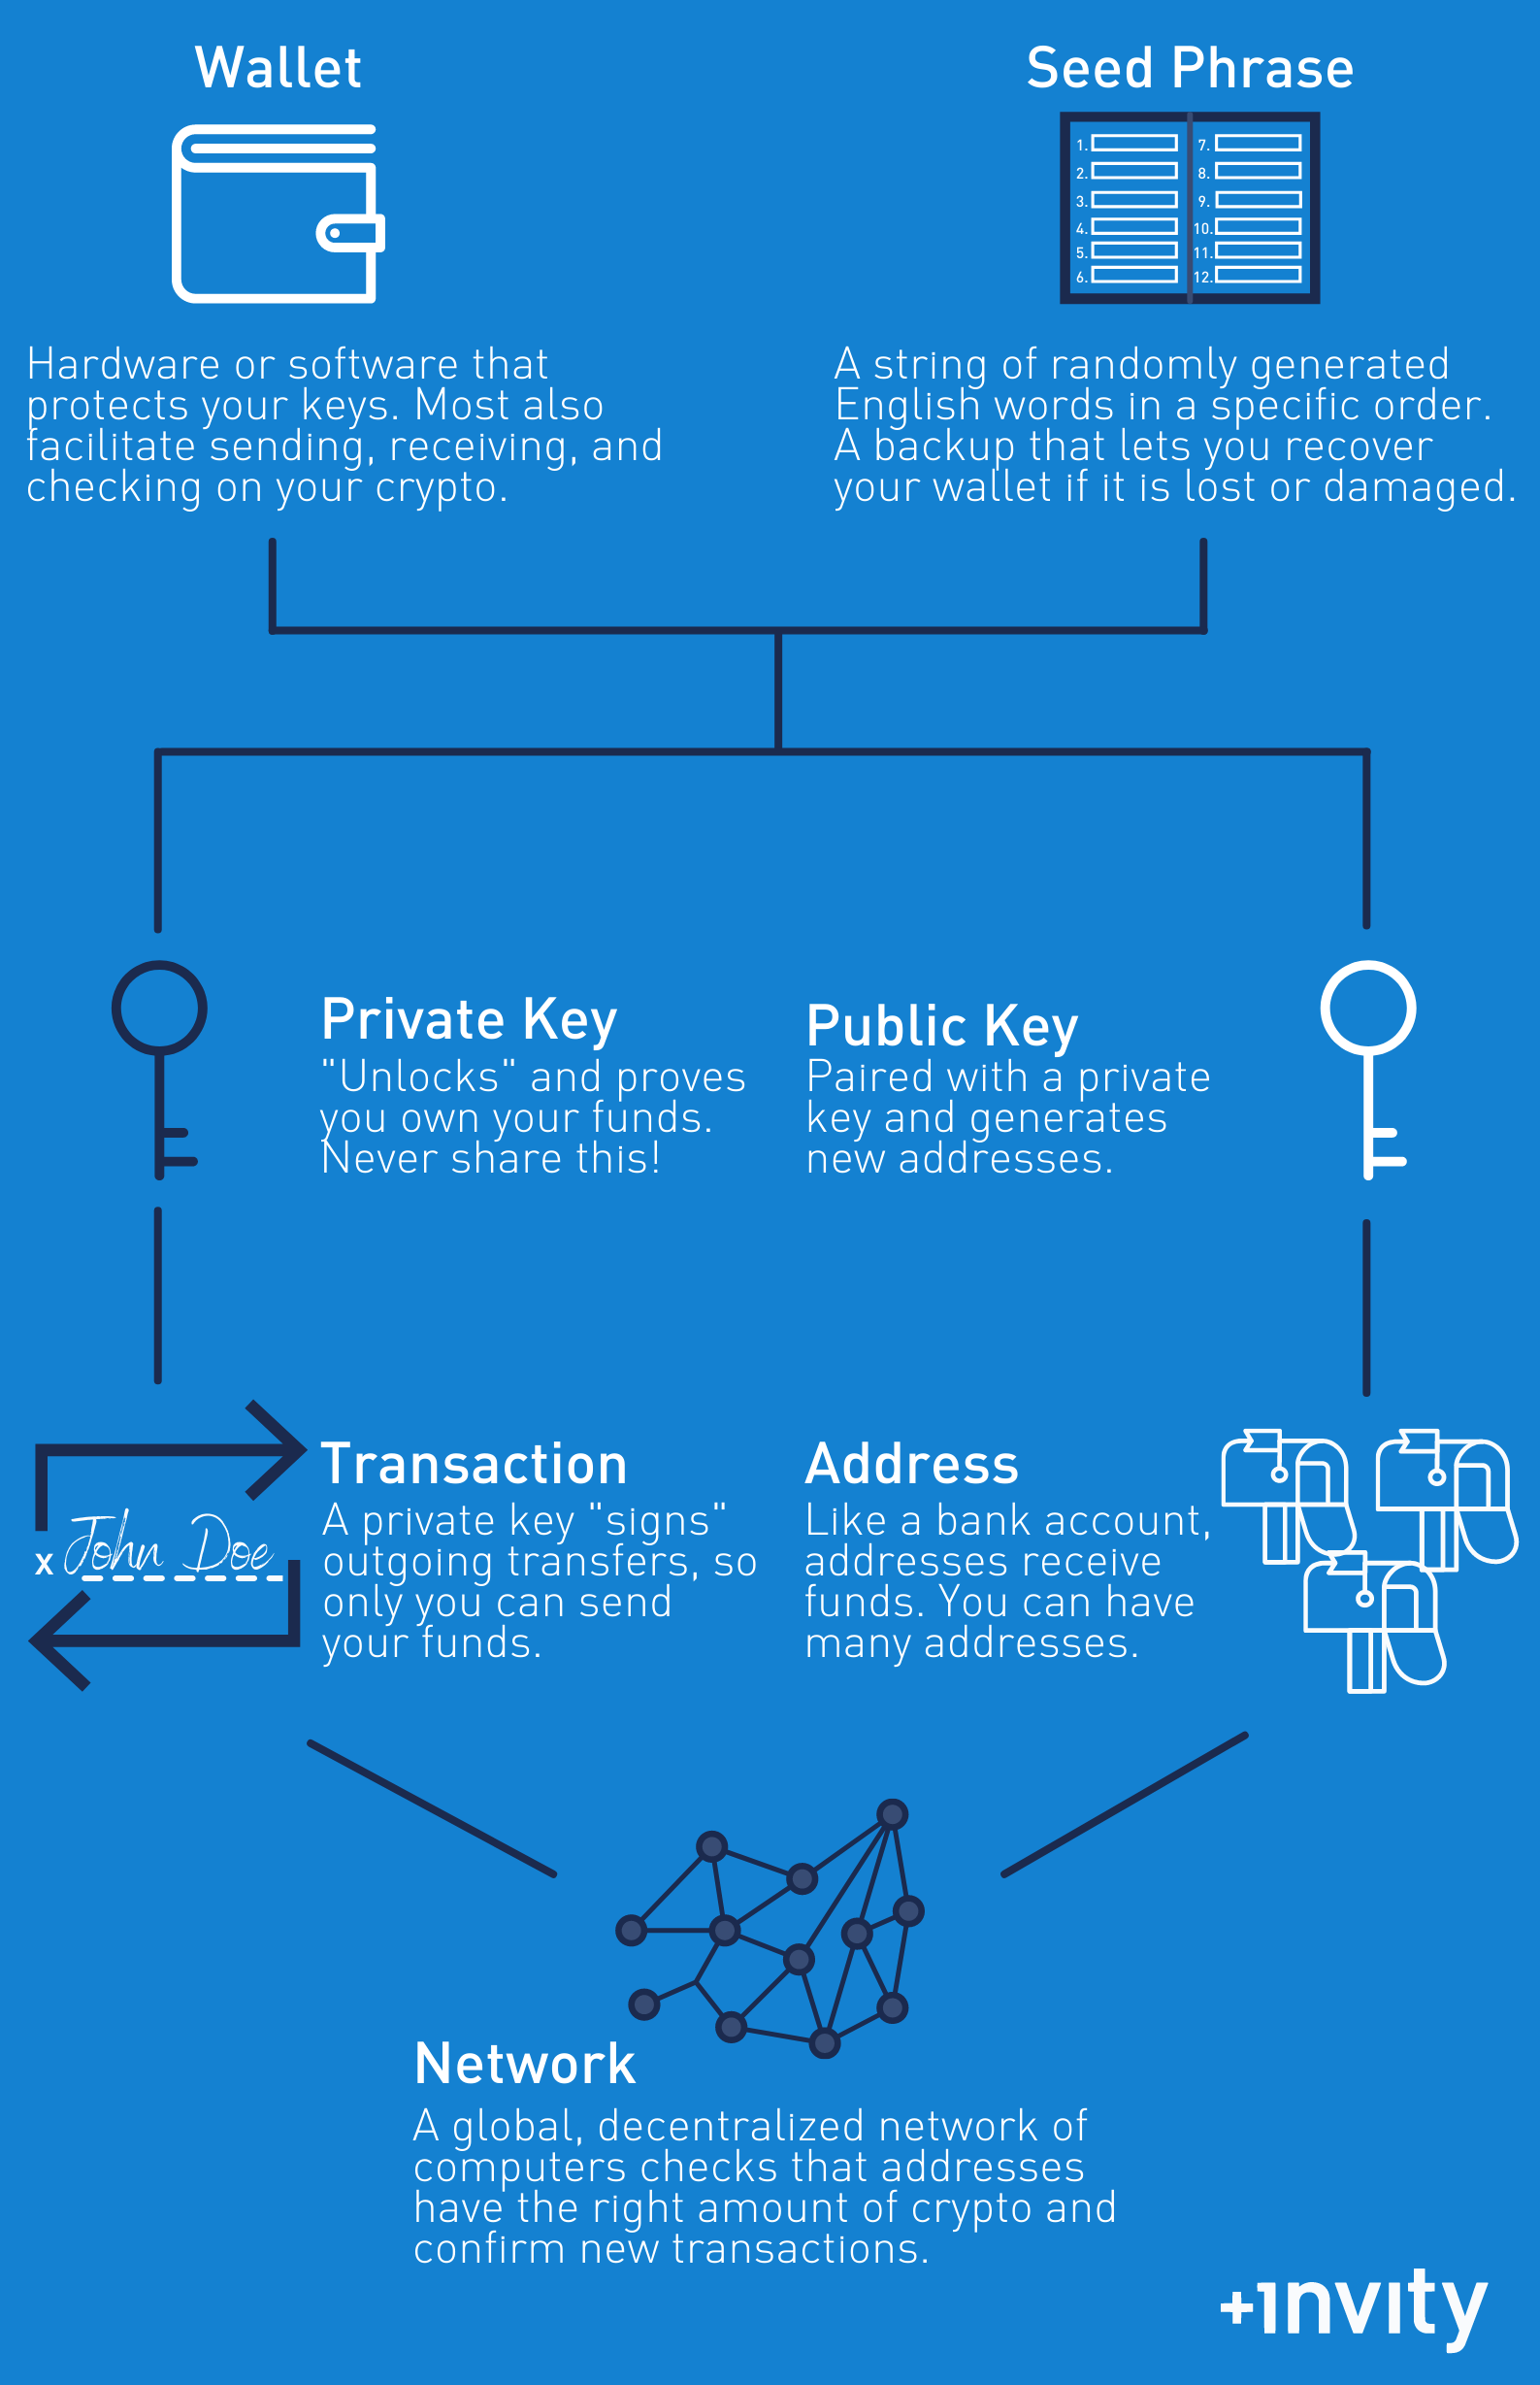 How Bitcoin wallets, seed phrases, private keys, and public keys are related.